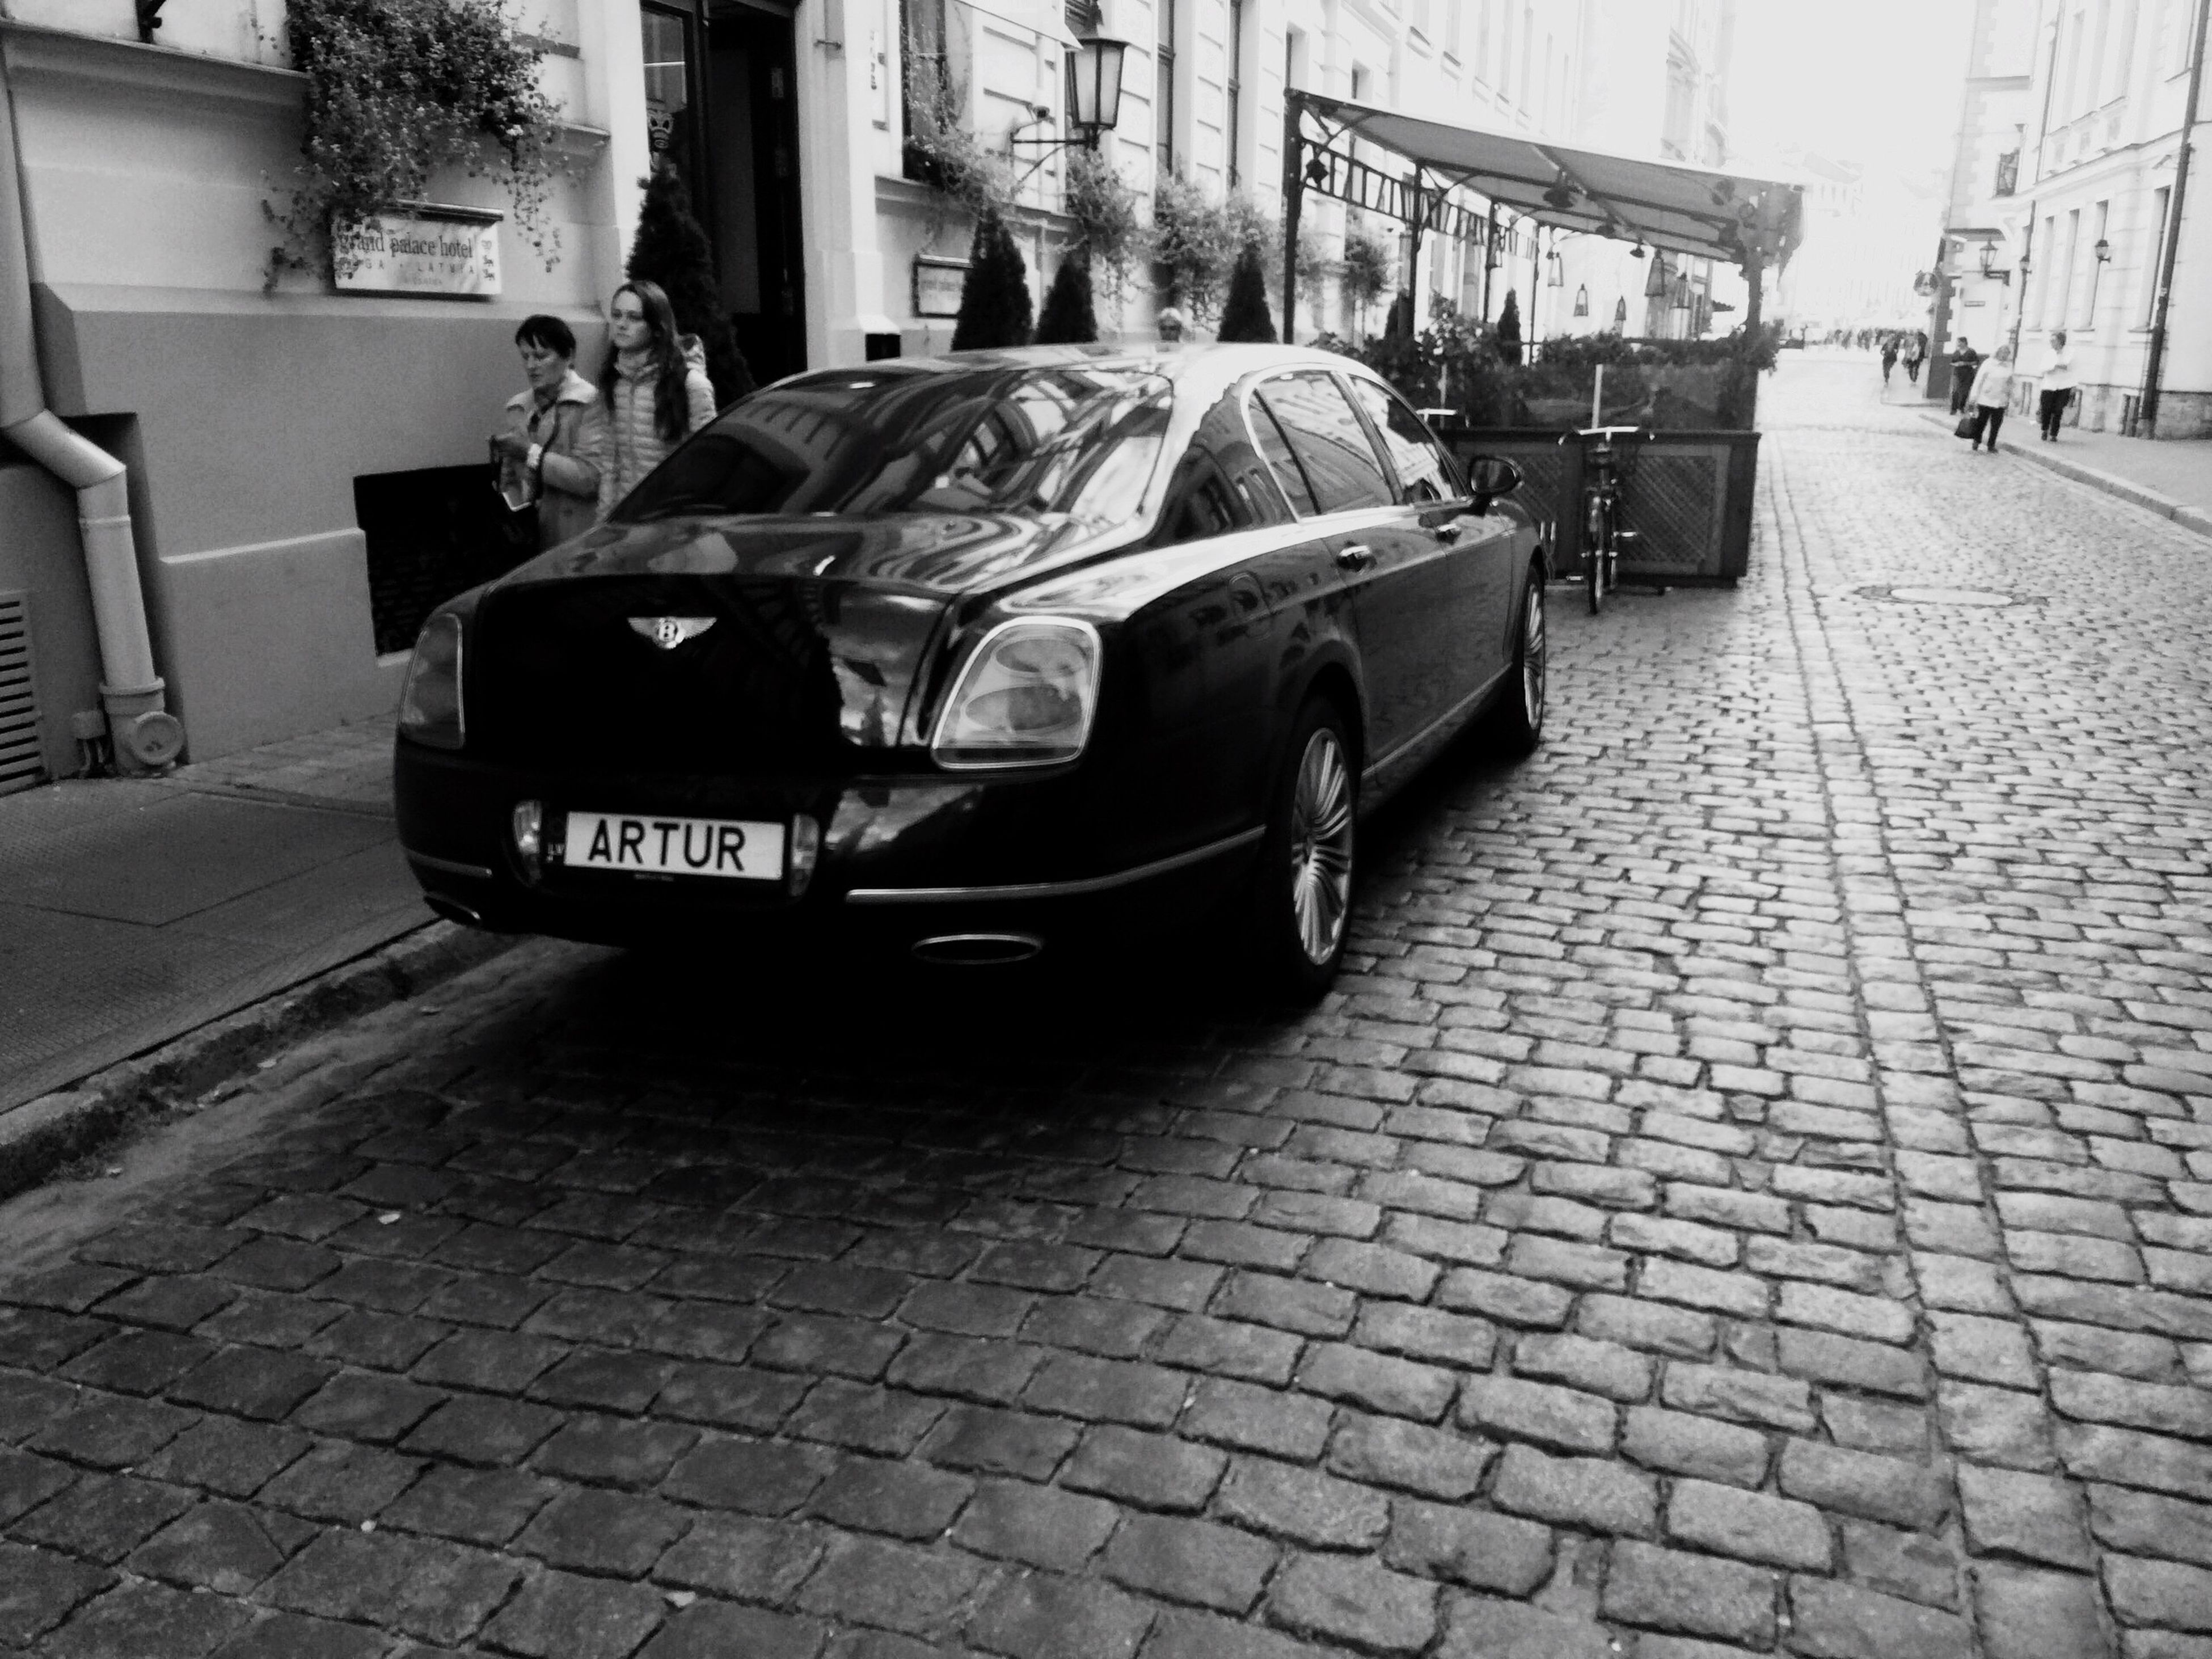 car, transportation, street, land vehicle, architecture, built structure, building exterior, cobblestone, city, mode of transport, road, stationary, day, city street, city life, outdoors, cobbled, paving stone, no people, the way forward